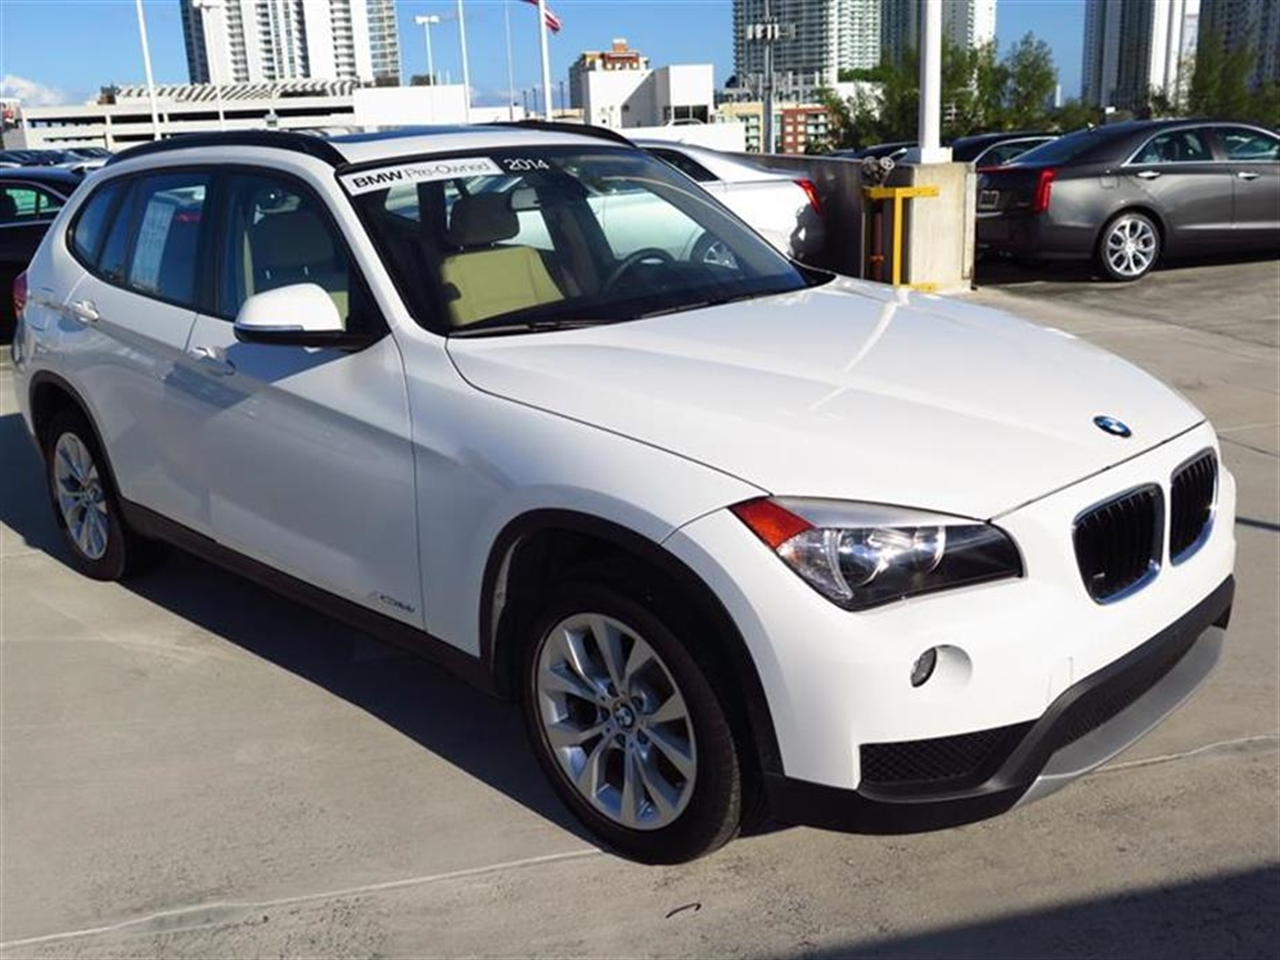 2014 BMW X1 AWD 4dr xDrive28i 9677 miles 2 Seatback Storage Pockets 3 12V DC Power Outlets LEATH